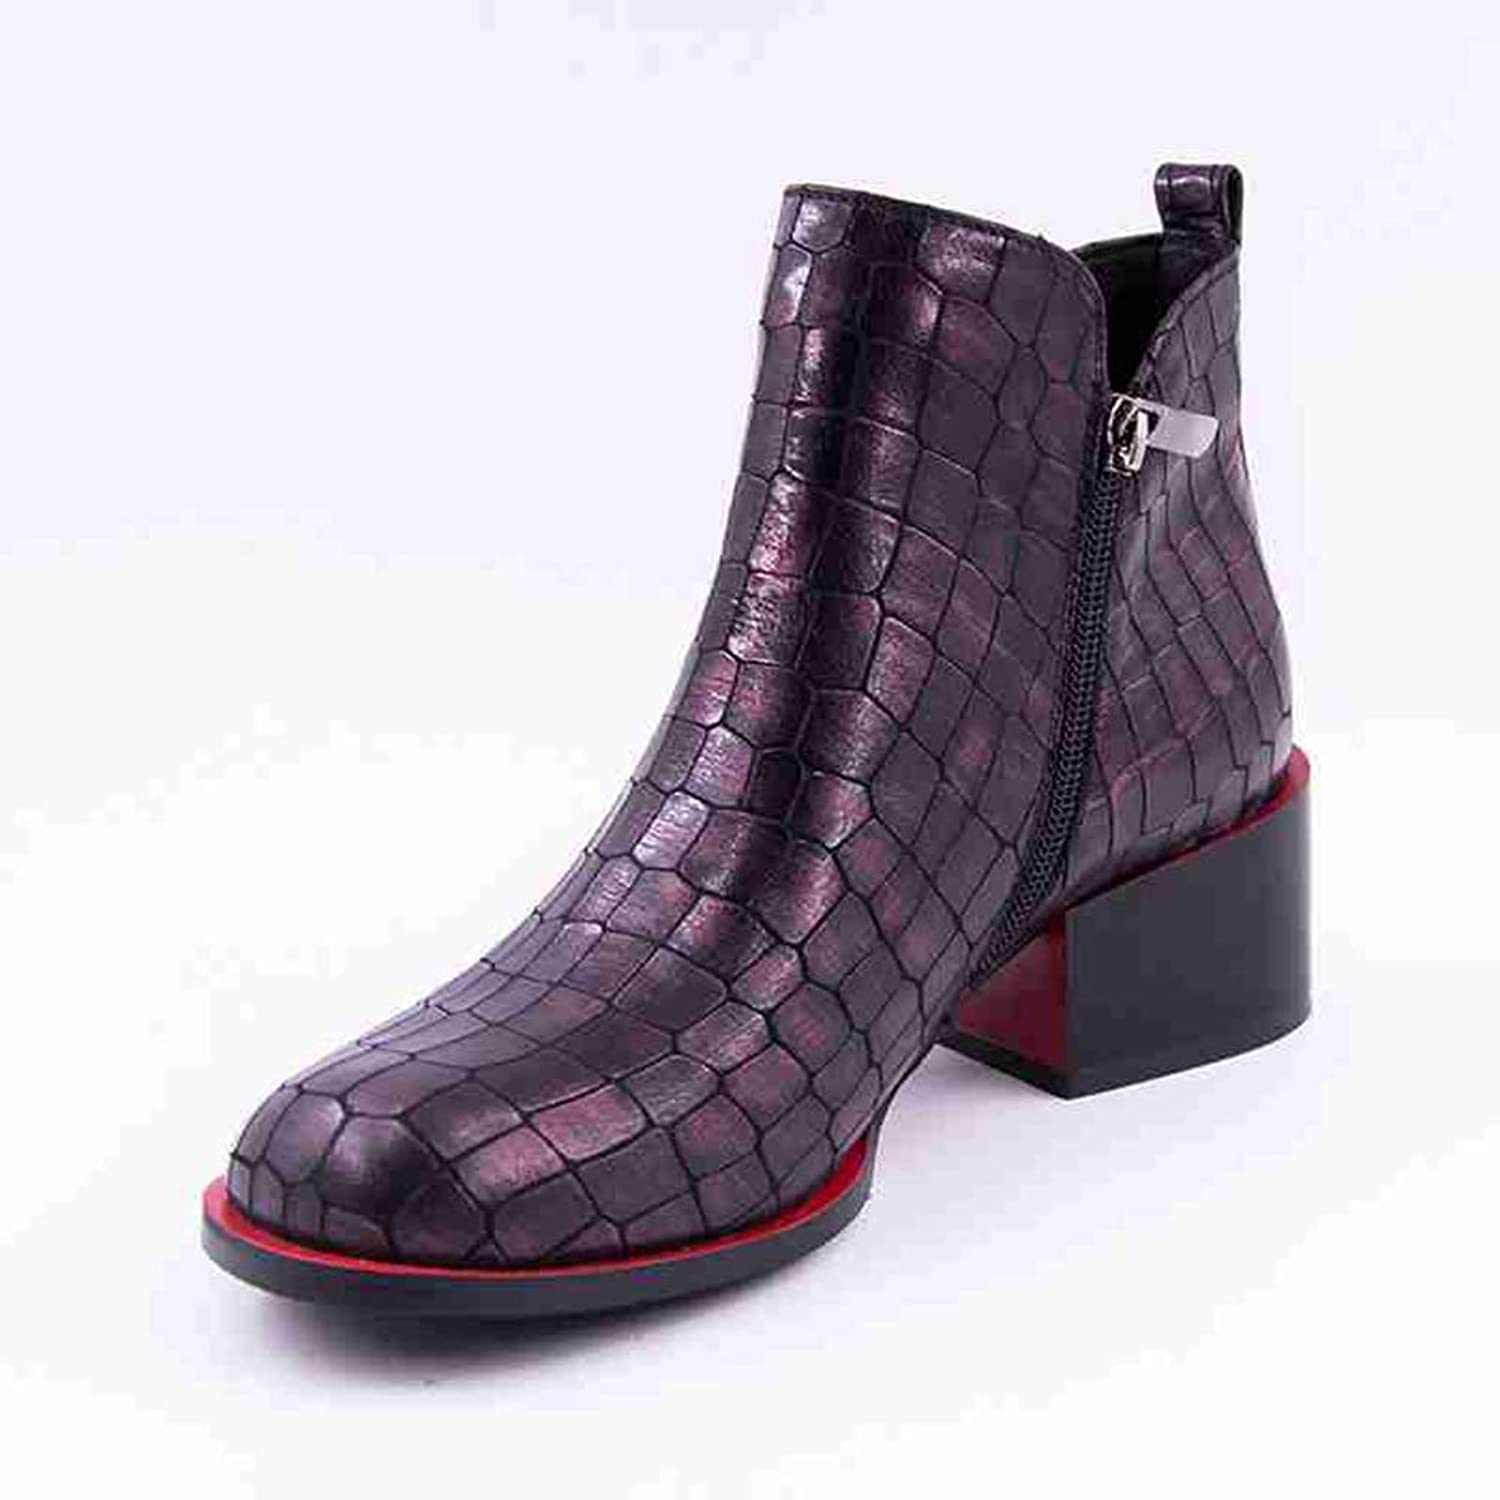 Zarbrina Womens Chunky Heel Platform Ankle Boots Fashion Round Toe Rubber Sole Short Plush Solid Zipper Up Slip On Winter Warm Snow shoes